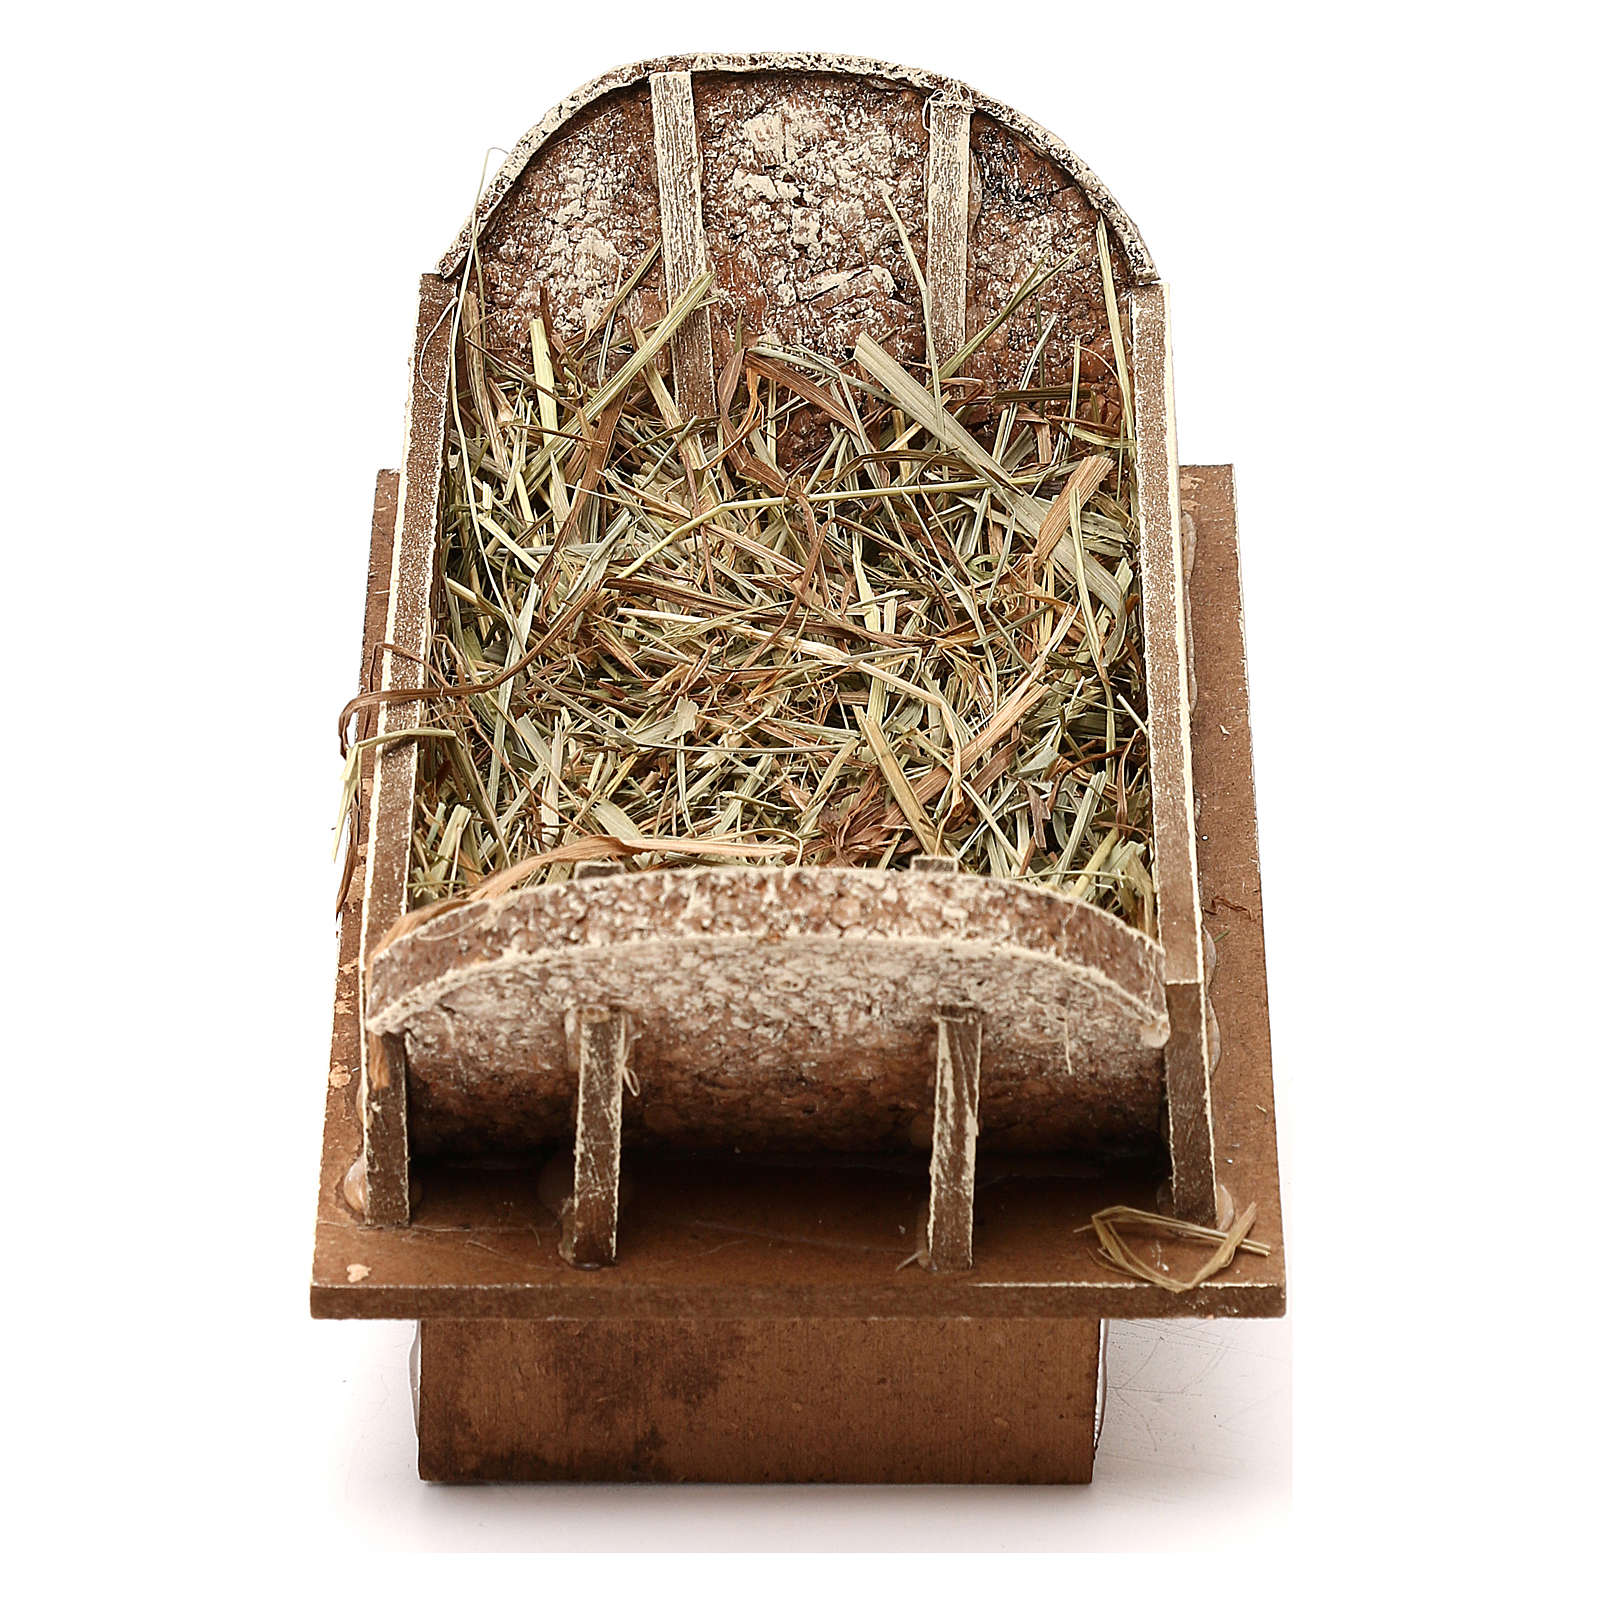 Cradle made of wood and straw for Nativity Scene 16-18 cm 3